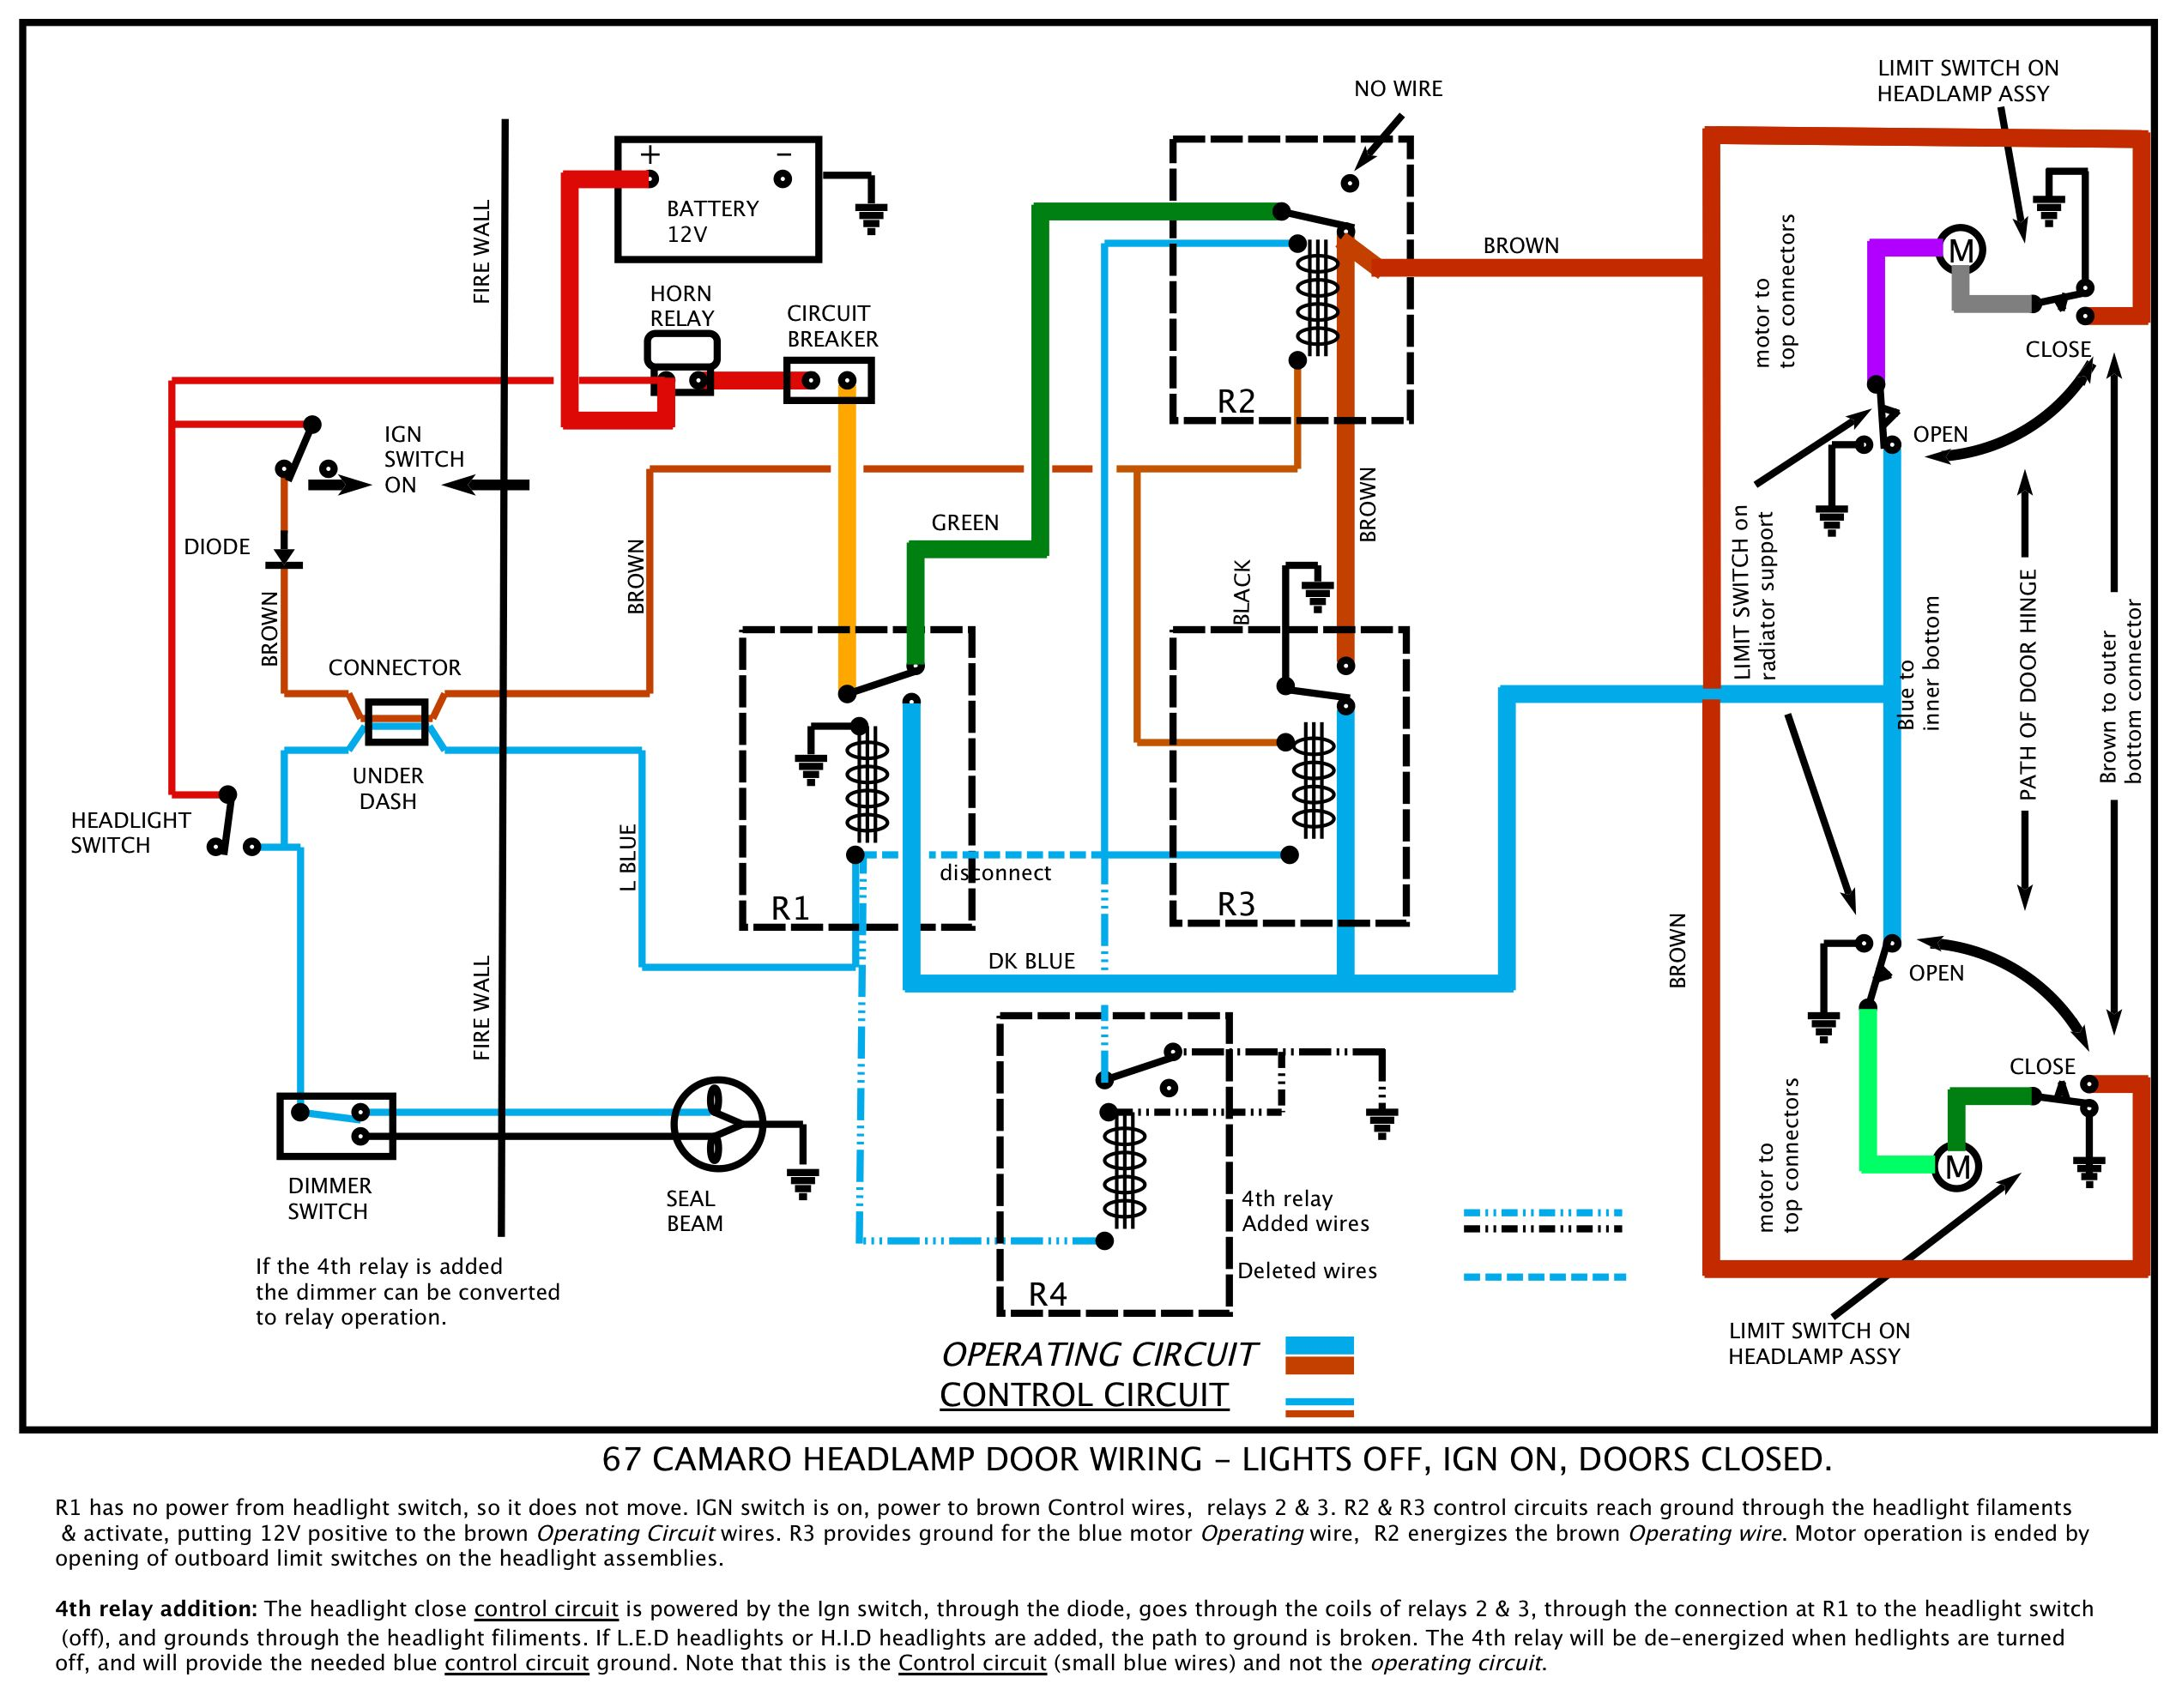 1967 camaro turn signal wiring diagram schematic - wiring diagram  load-brown-a - load-brown-a.nuvolafeste.it  nuvola feste e gonfiabili